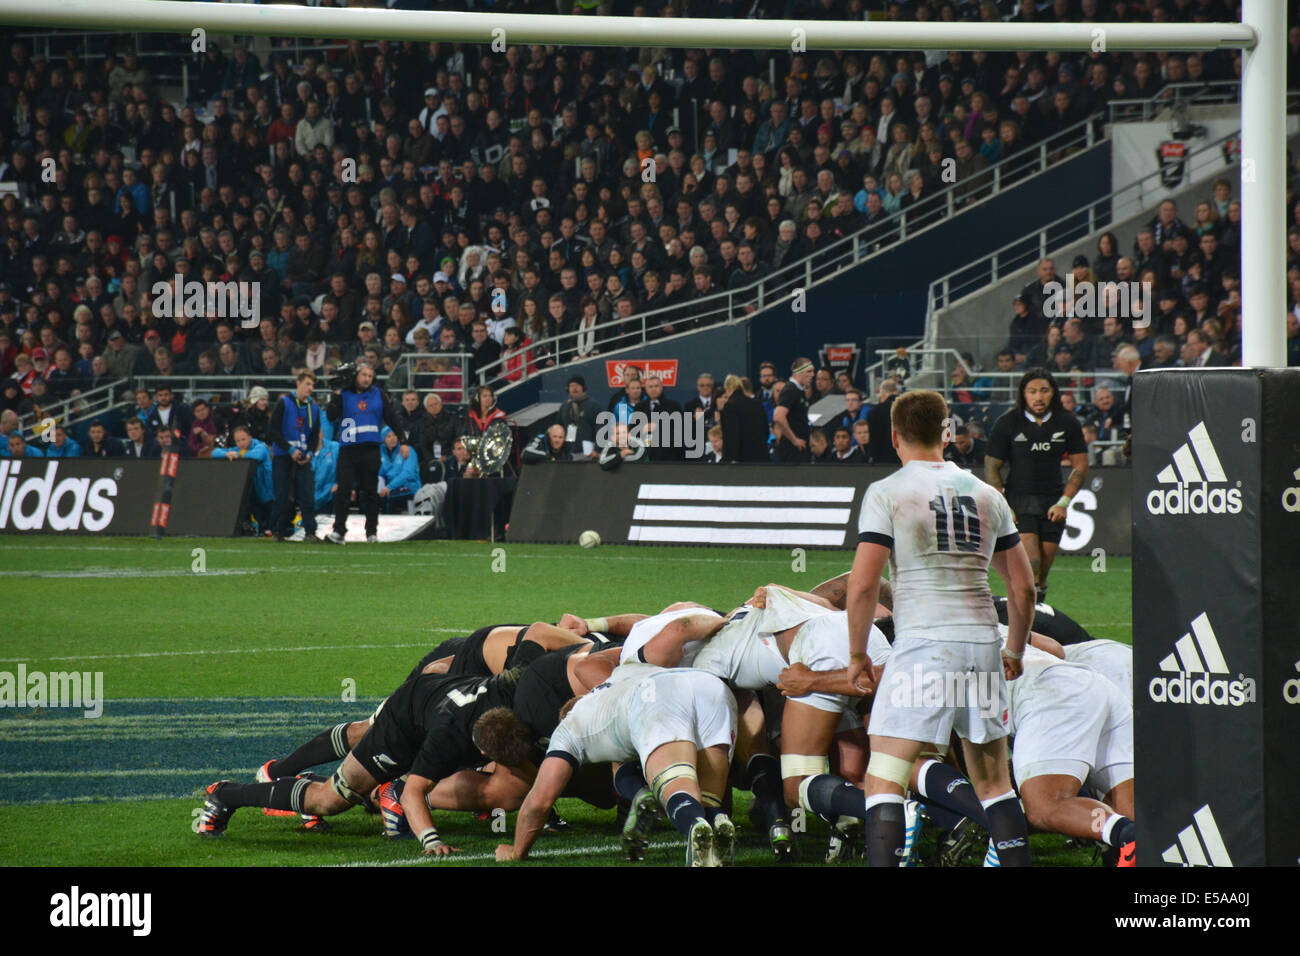 Rugby scrum during the All Blacks Vs England game in the Forsyth Barr Stadium, Dunedin,  played on June 14, 2014 - Stock Image